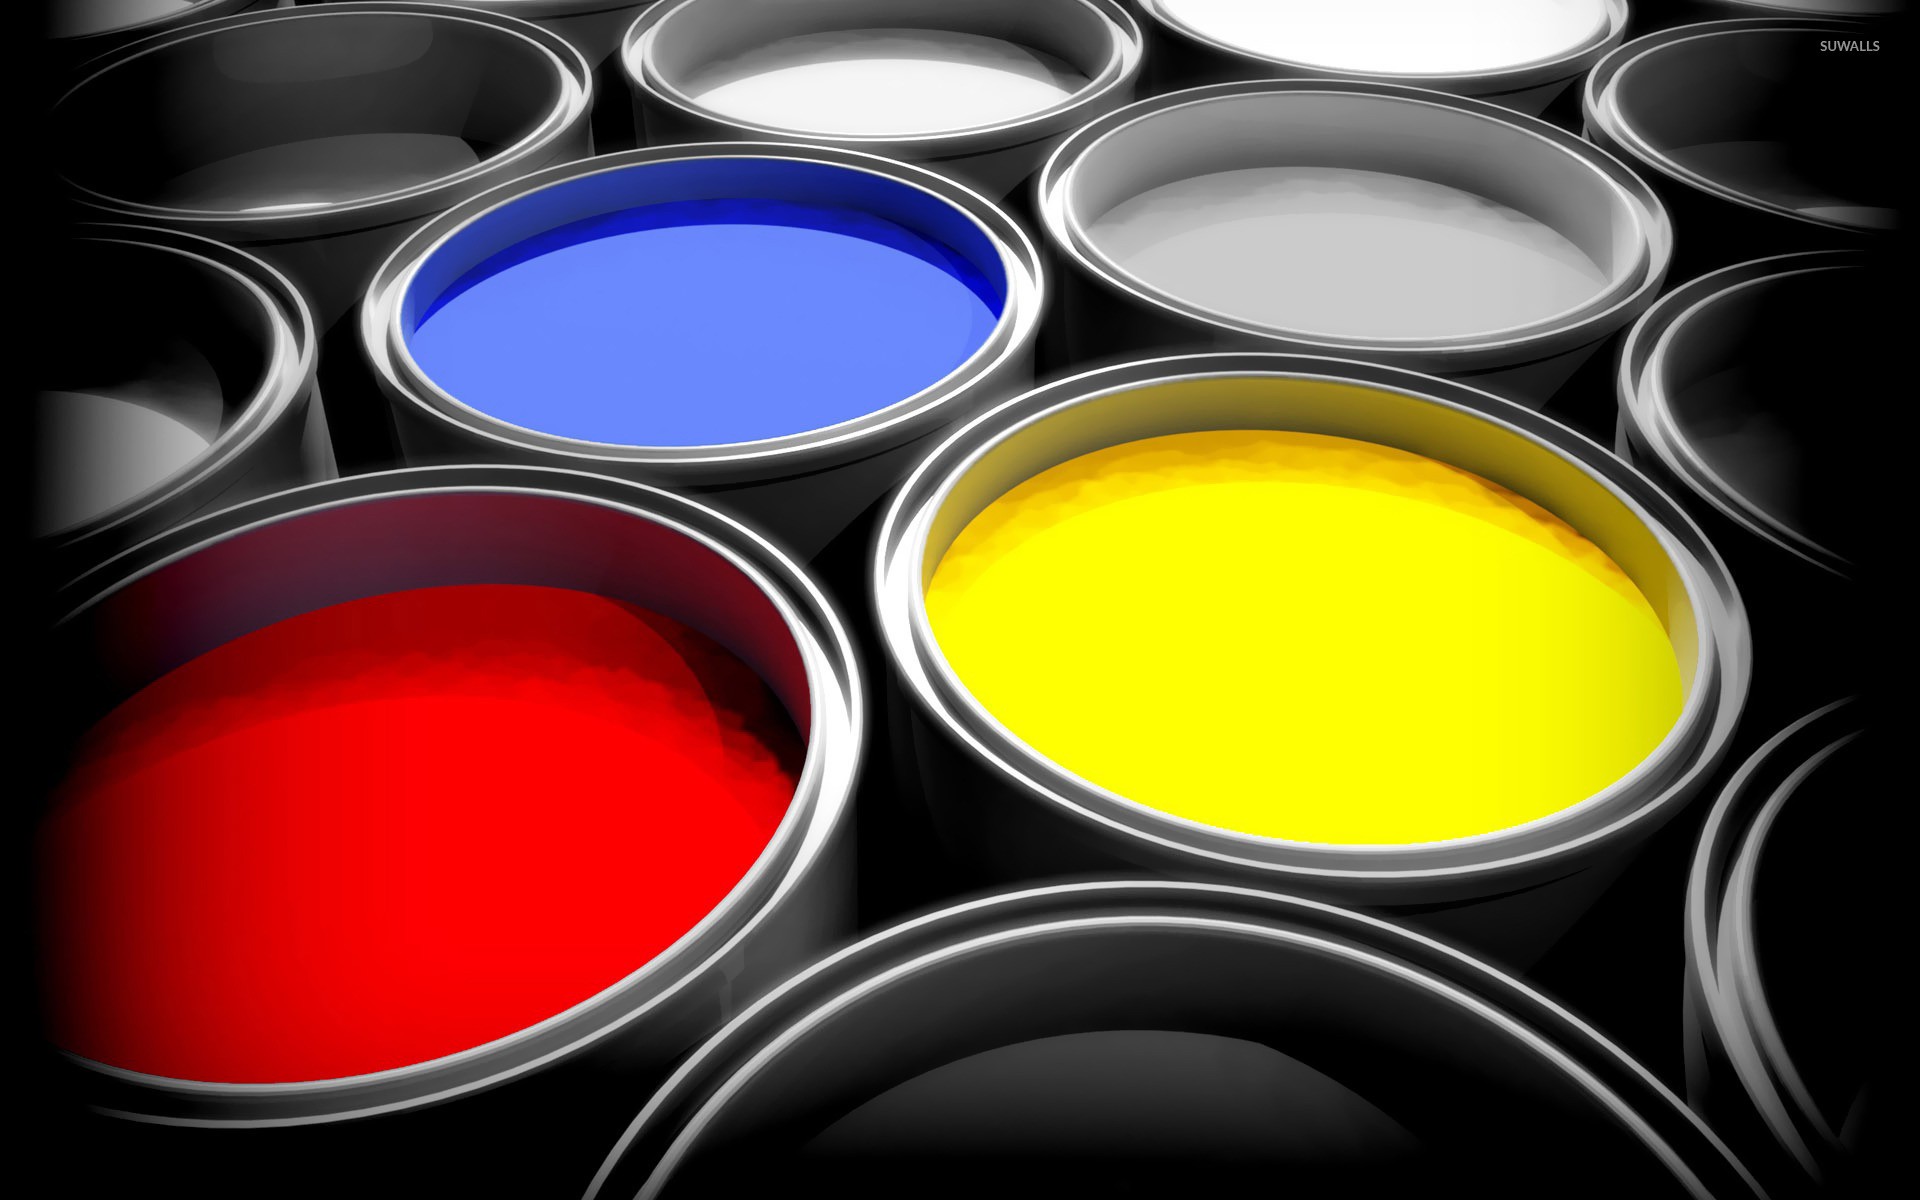 Paint buckets wallpaper - Photography wallpapers - #18963